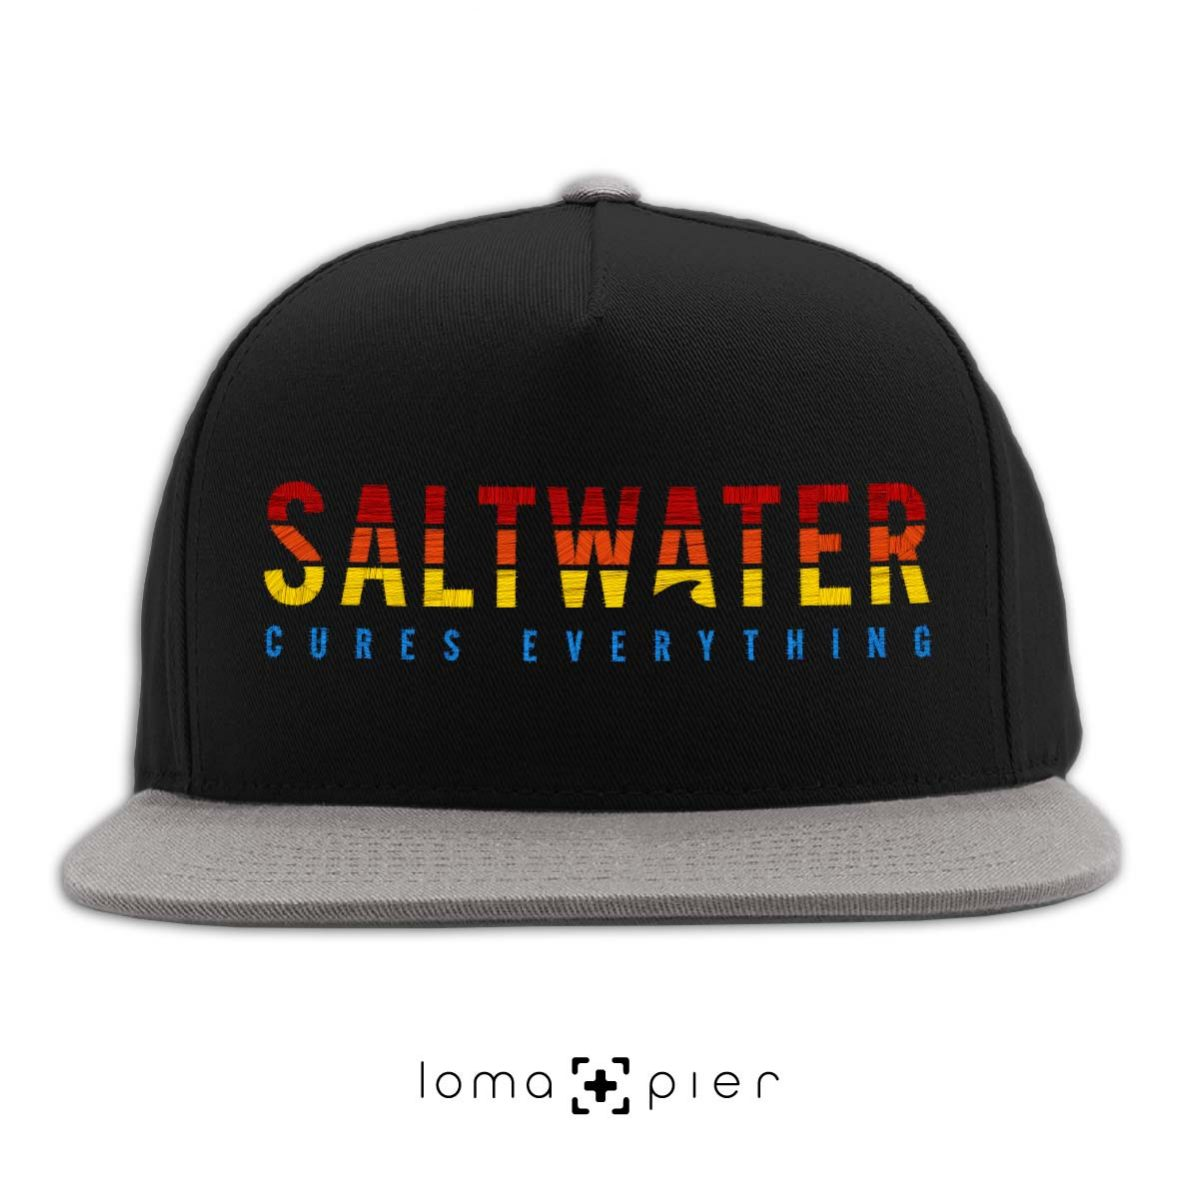 SALTWATER CURES EVERYTHING black grey classic snapback hat by loma+pier hat store